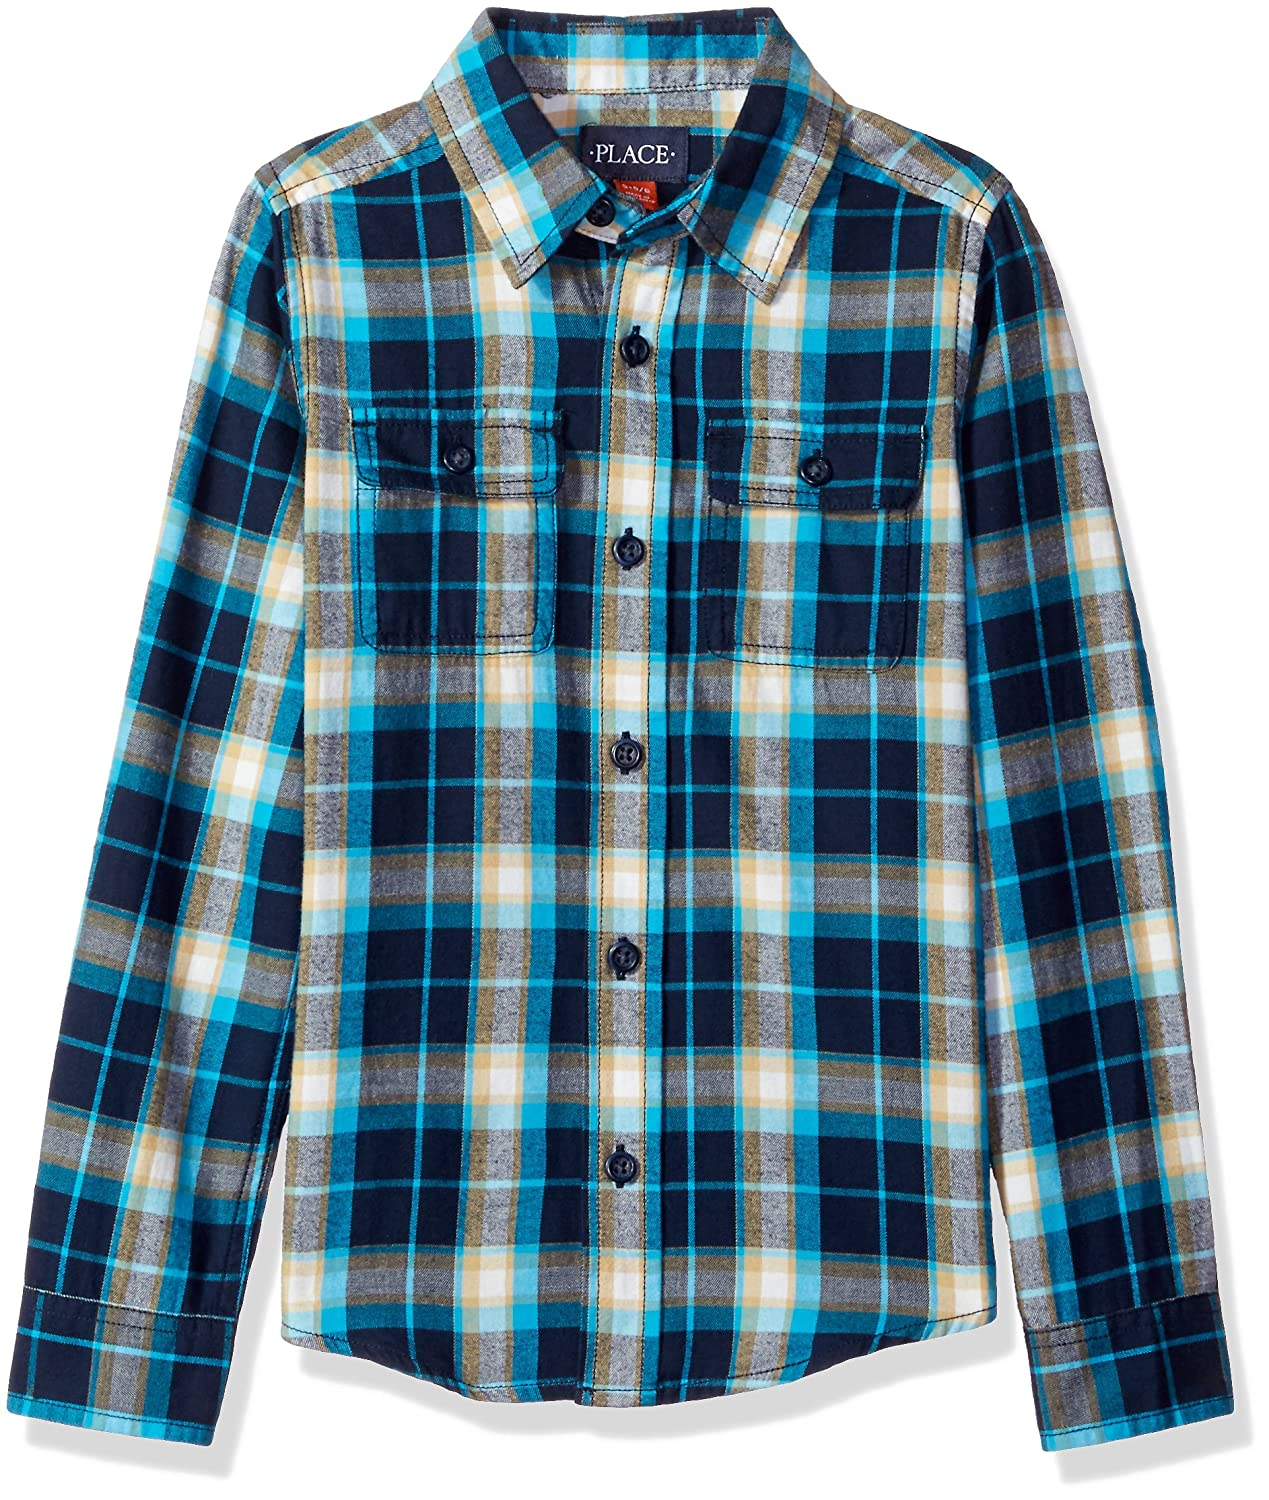 The Children's Place Boys' Long Sleeve Brushed Shirt